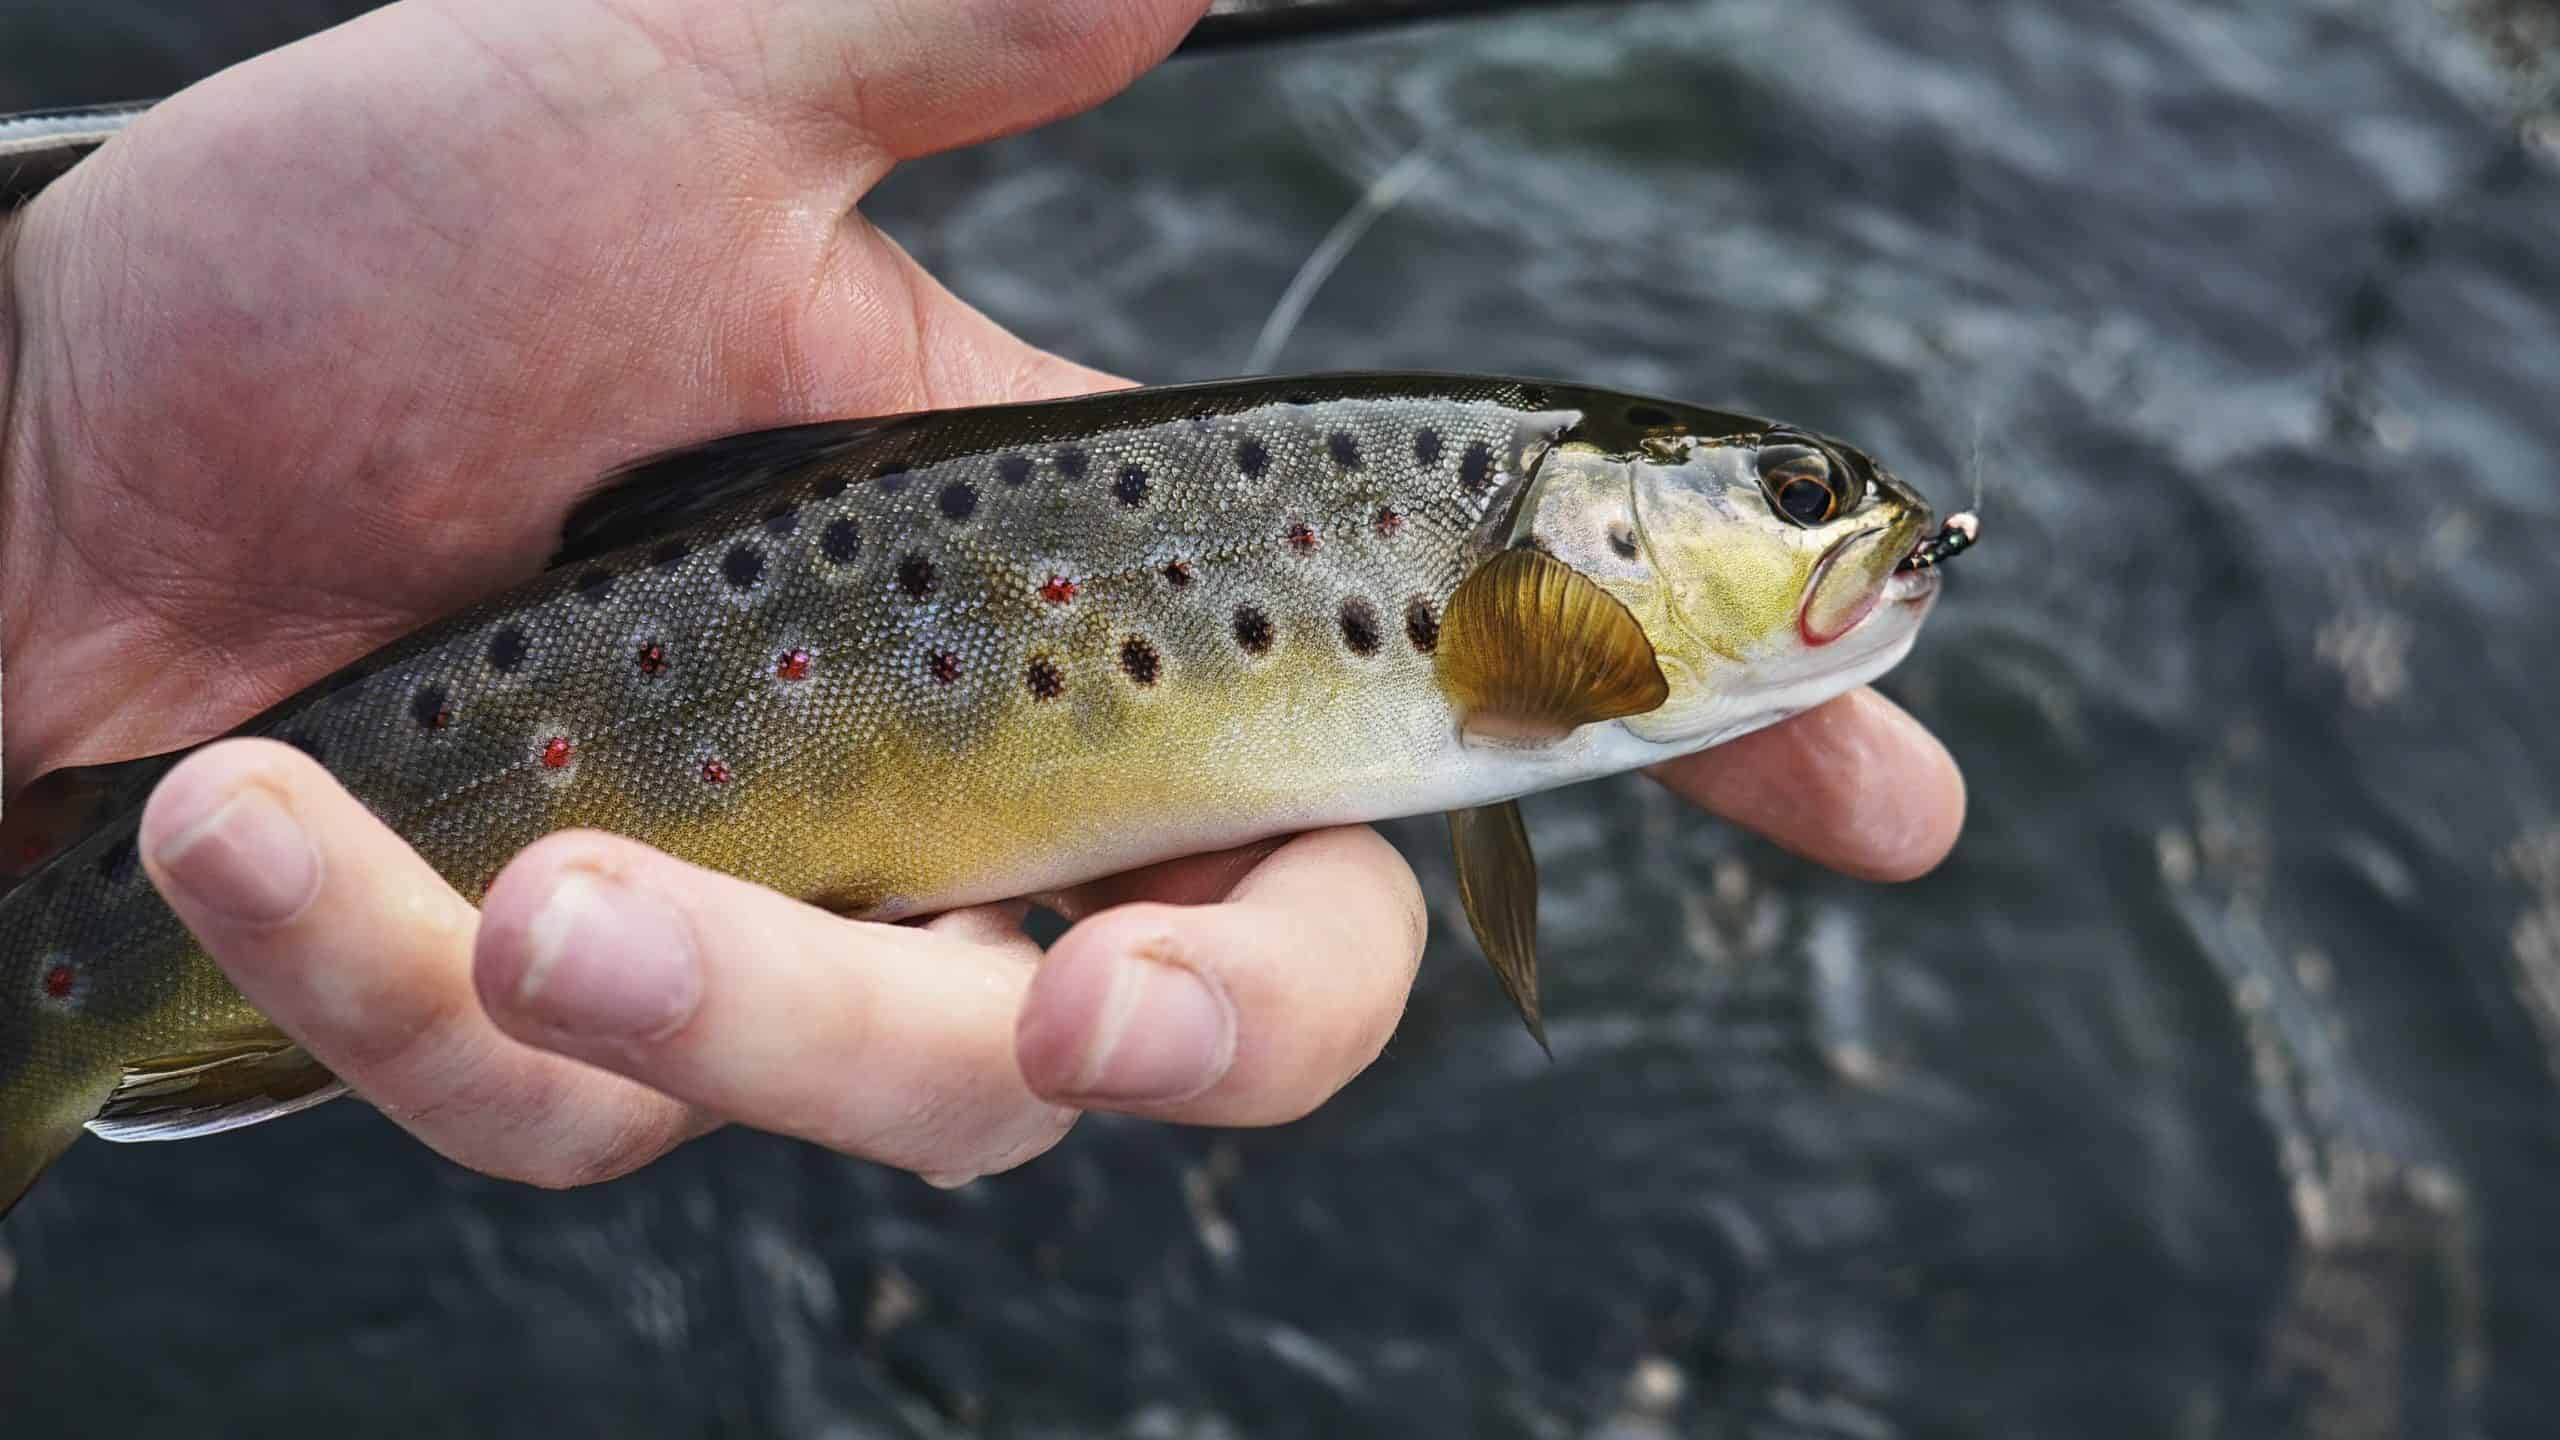 Learn How To Hook A Fish With Ease